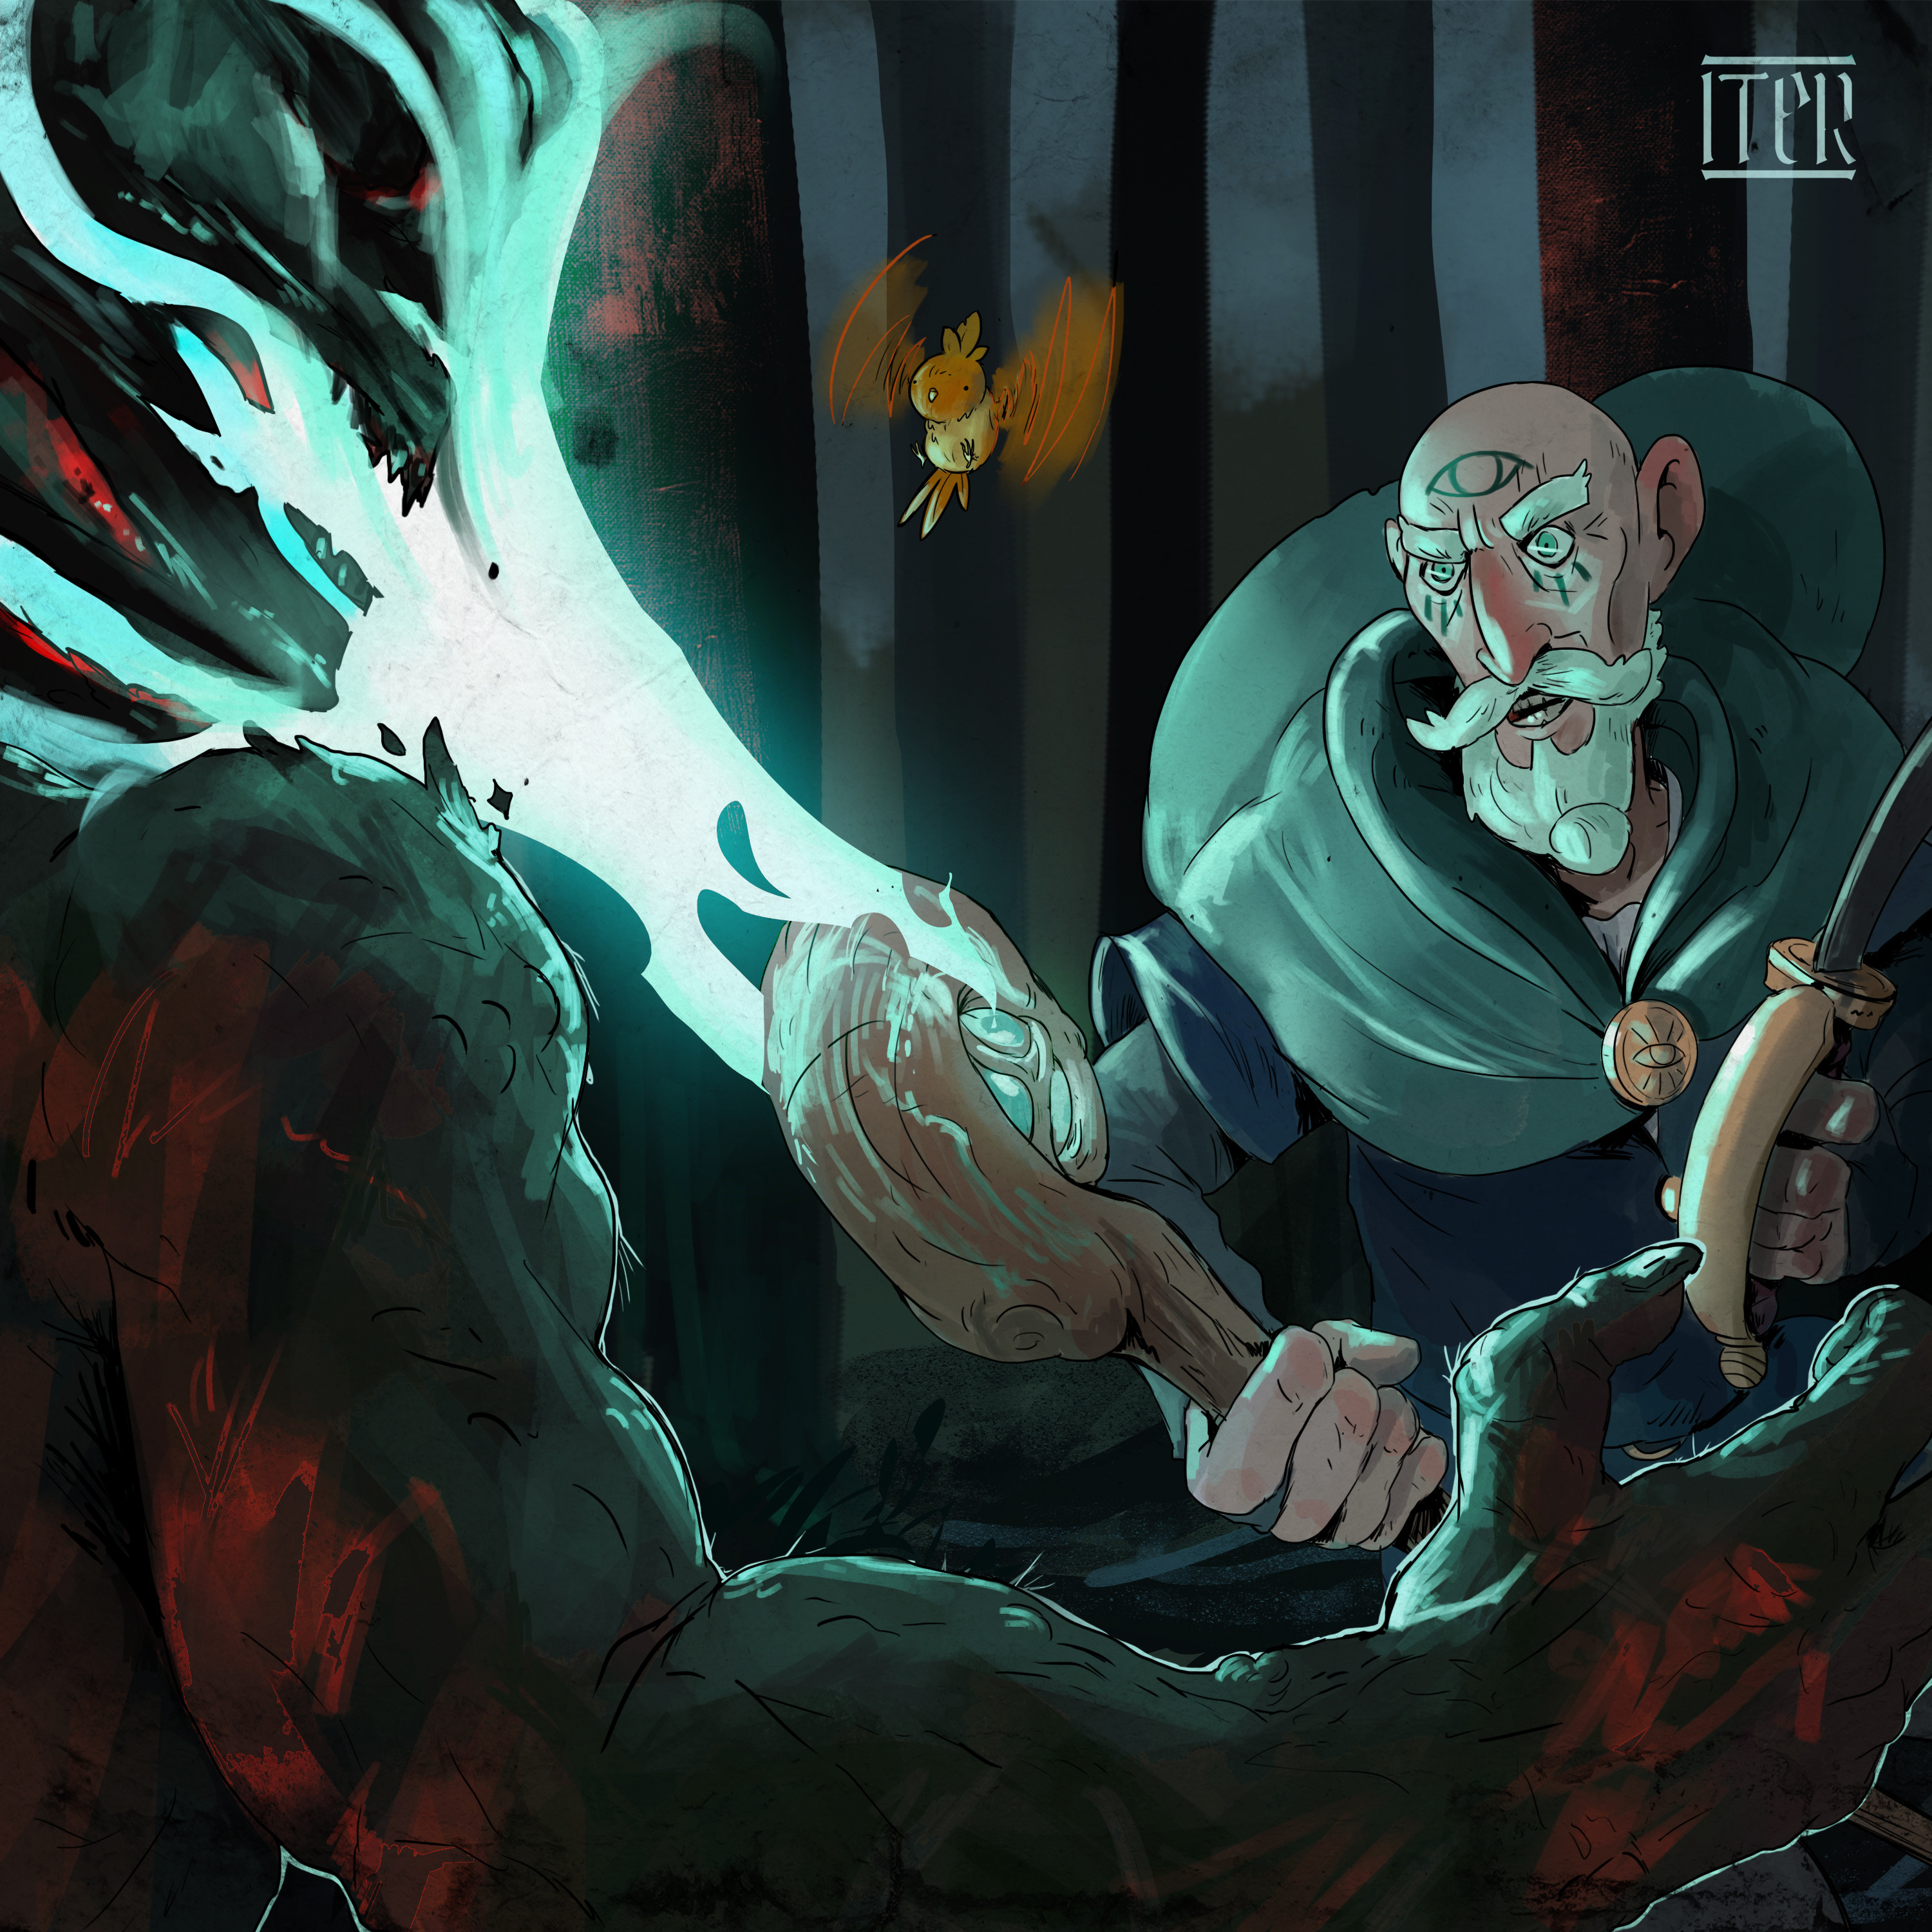 Vismir is a powerful mage in search for quests, haunted by his past. Sometimes he's not in his right mind.